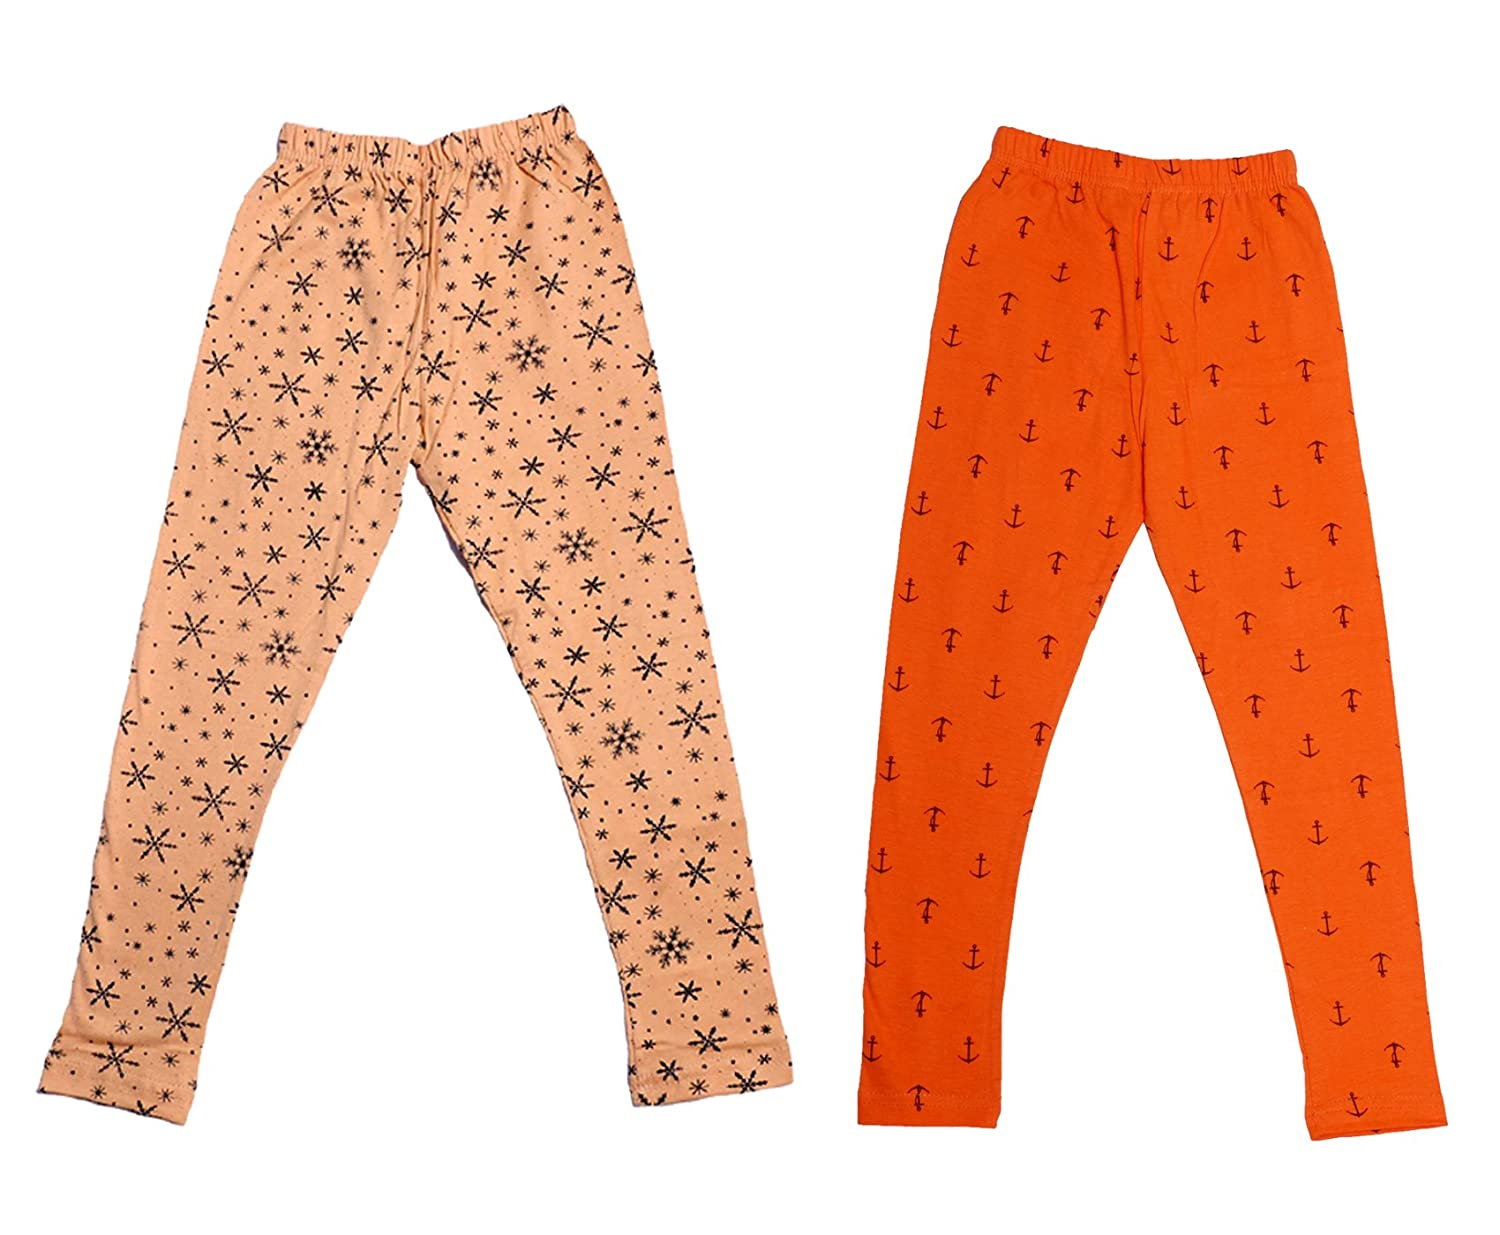 Pack of 2 Indistar Girls Super Soft and Stylish Cotton Printed Churidar Legging